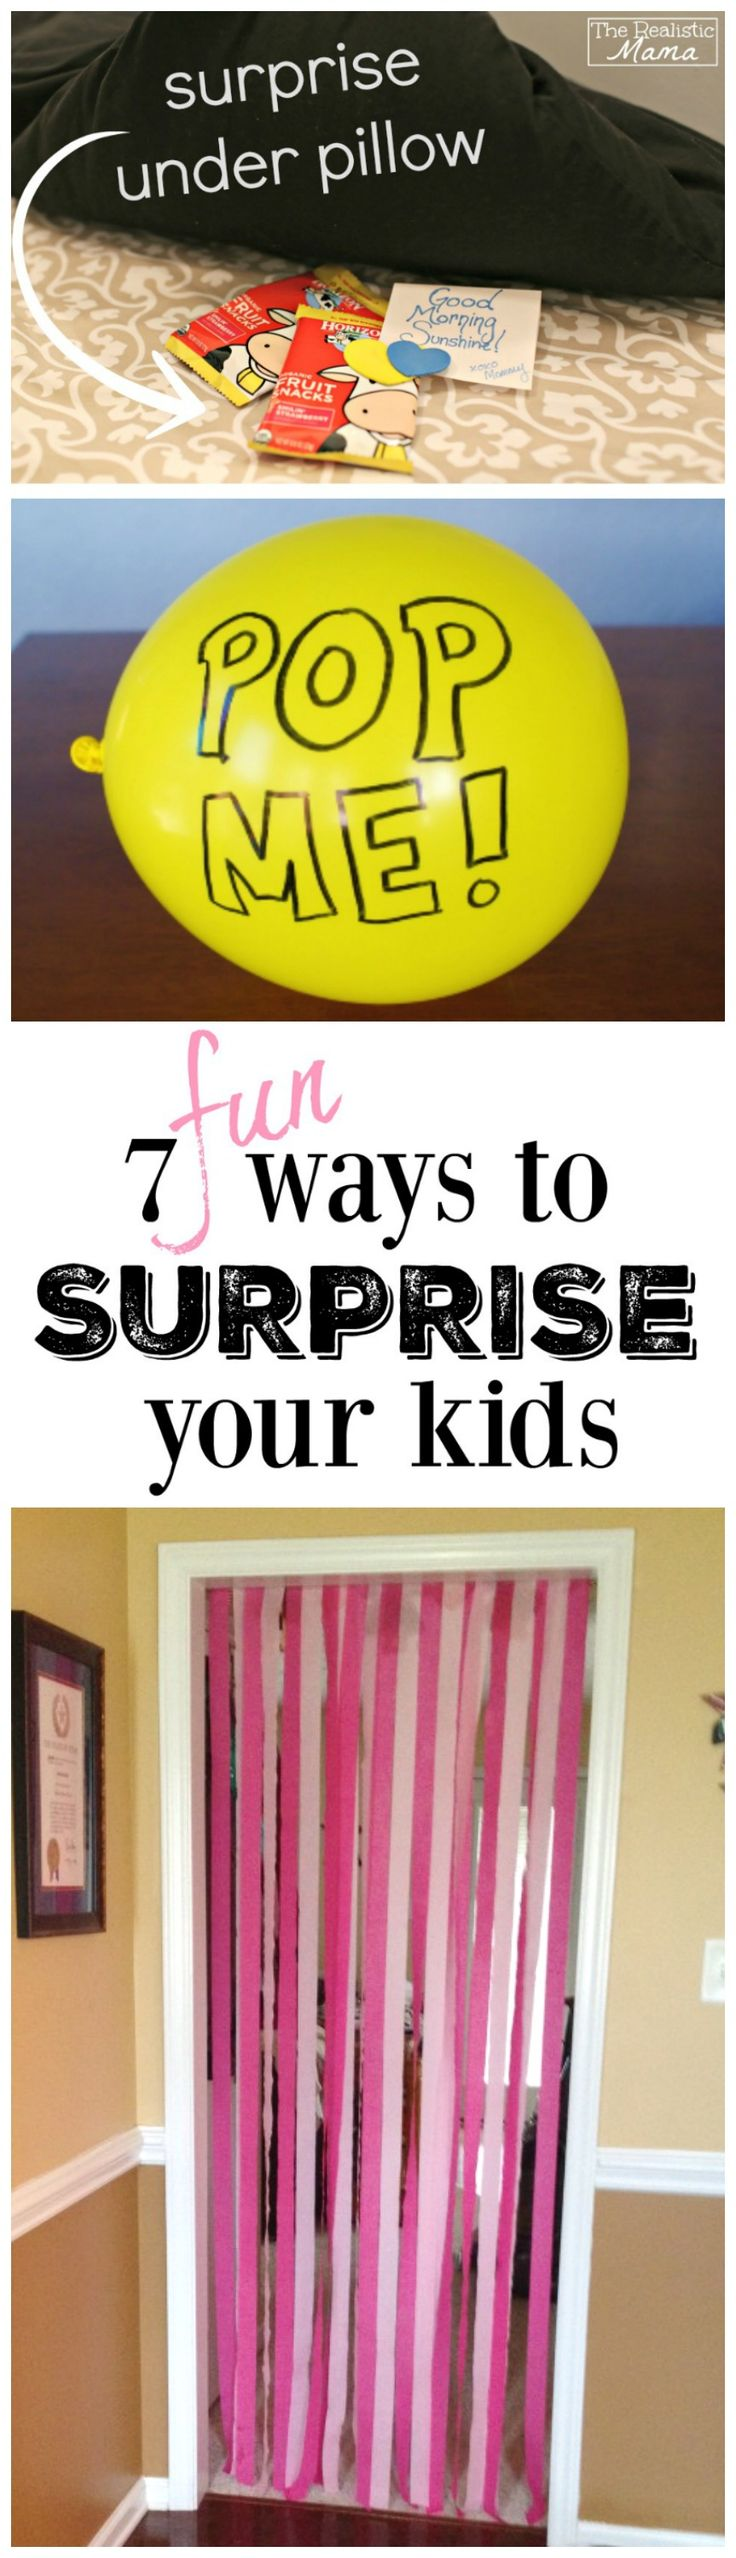 7 fun and easy ways to surprise your kids #HorizonSnacks #ad @horizonorganic